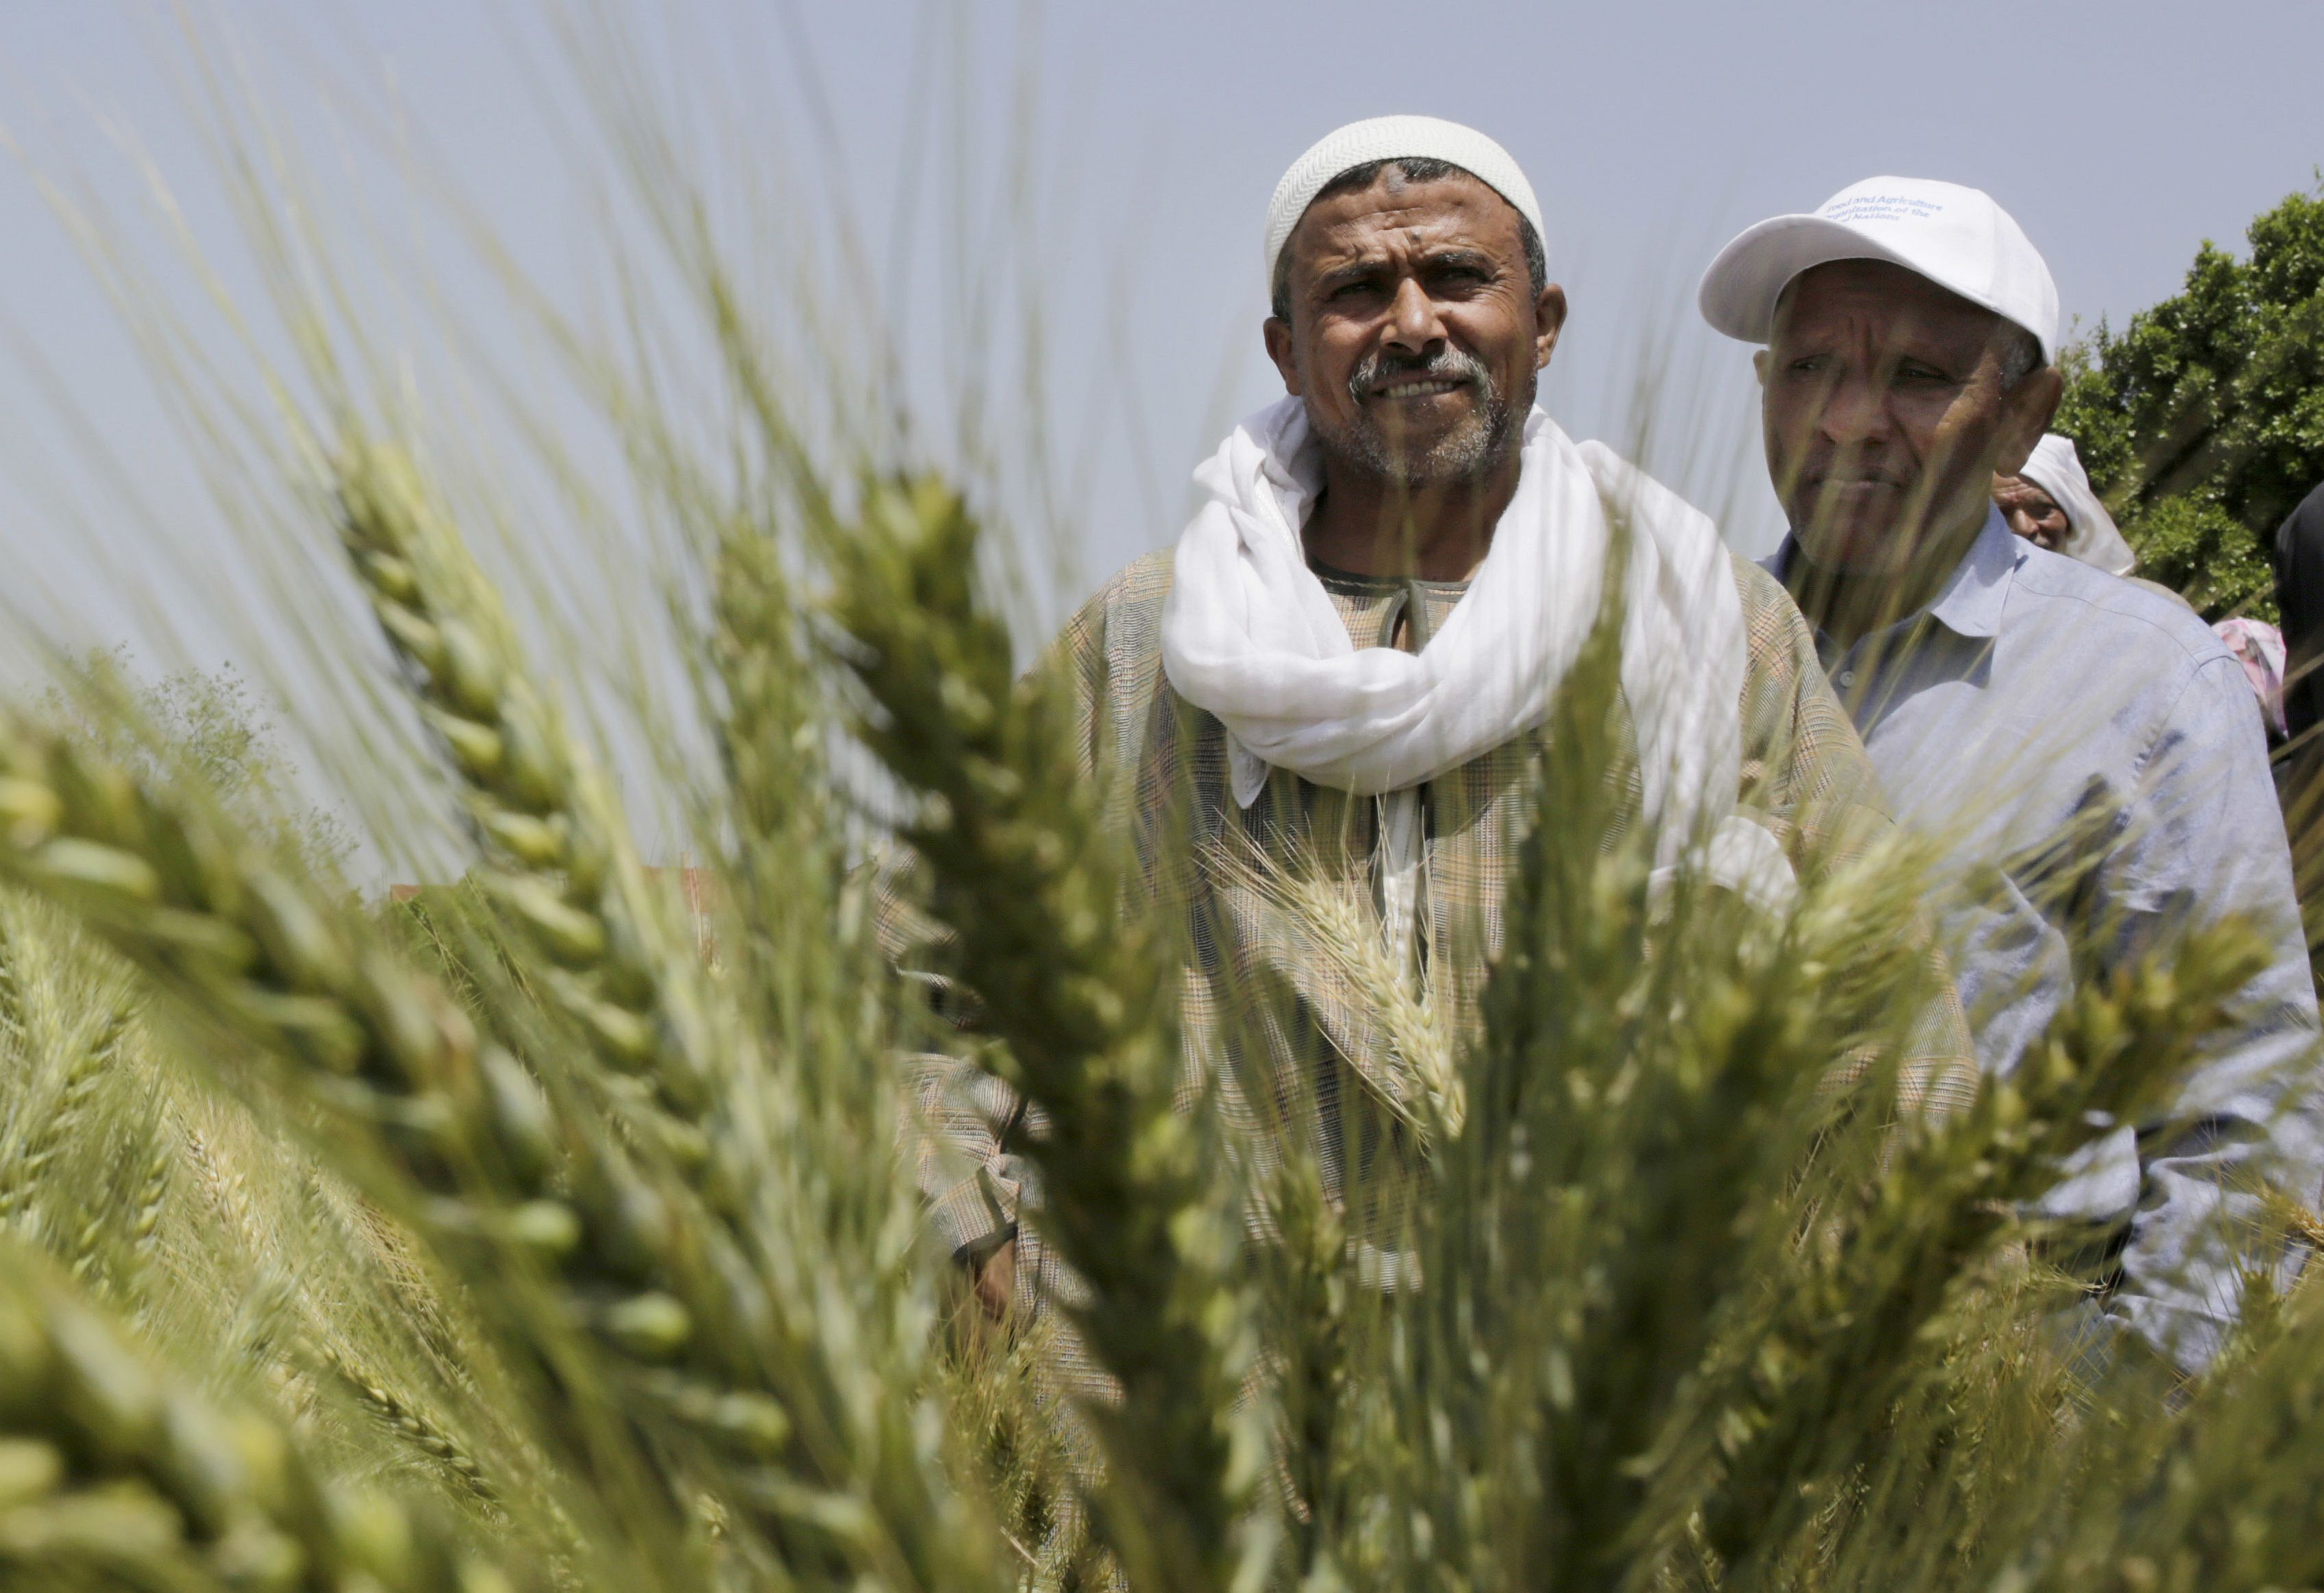 In this Monday, April 11, 2016 photo, Egyptian farmers stand in front of wheat crops on their land in Kafr Hamouda village, in Zagazig, 63 miles (100 kilometers) northeast of Cairo, Egypt. Farmers begin to use a small, relatively cheap plow allowing them to nearly double the yields of their wheat. The new technology could one day help Egypt alleviate water shortages that threaten to cripple the Arab world's most populous country. (AP Photo/Amr Nabil)